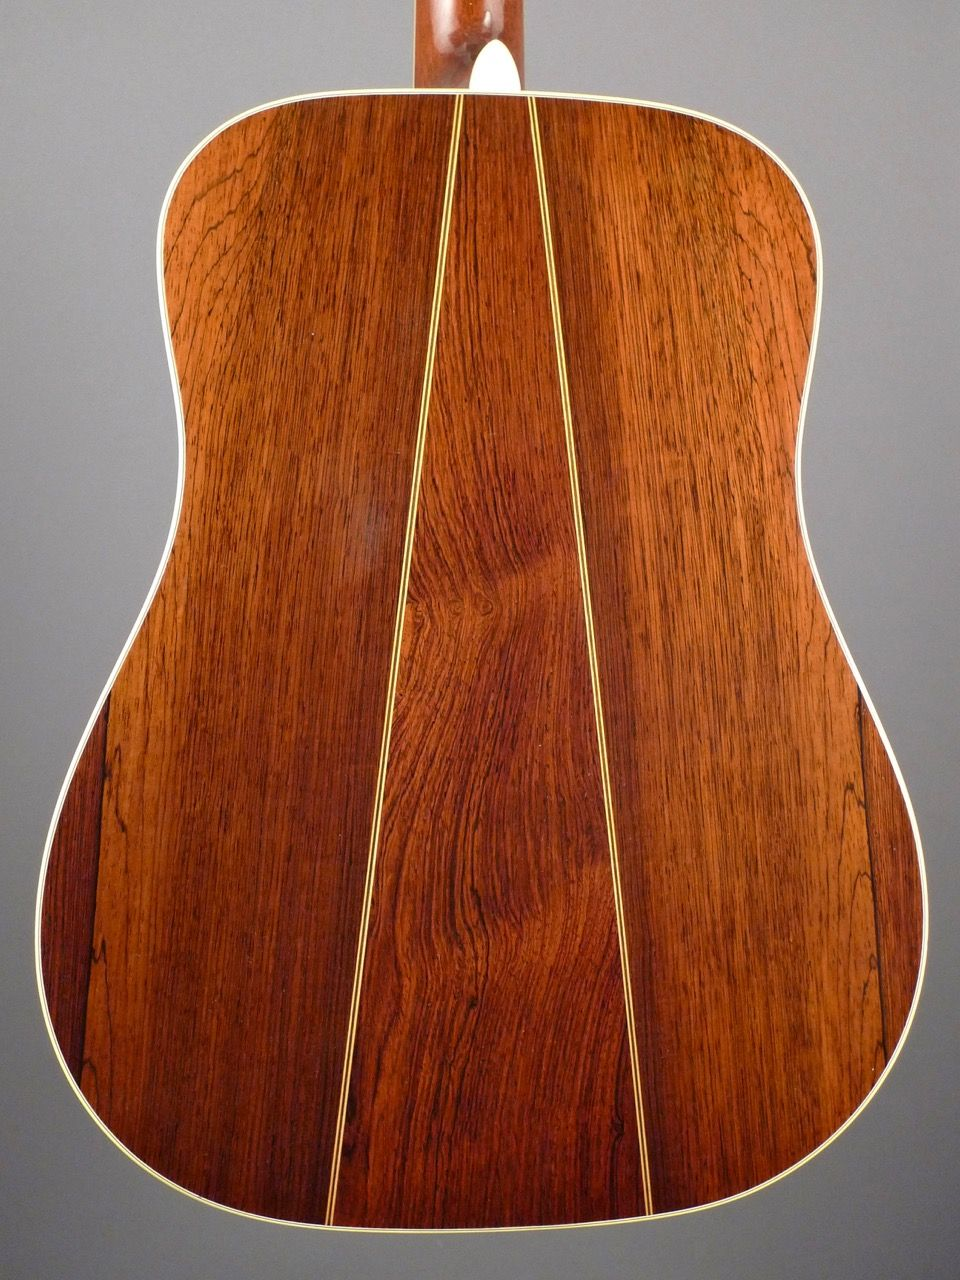 1969 Martin D 35 Acoustic Guitar Brazilian Rosewood Back And Sides